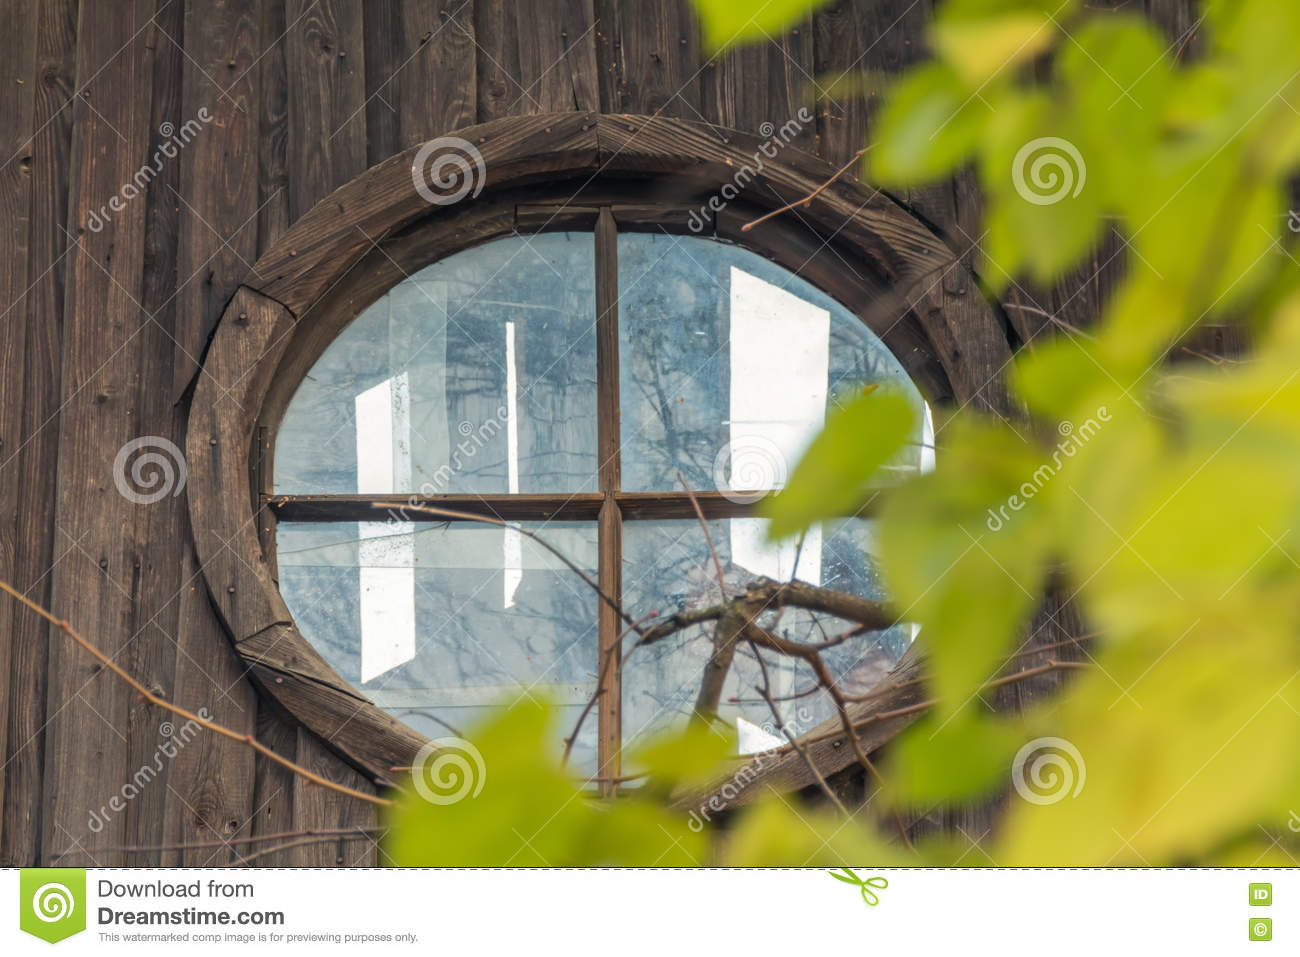 Attic window in abandoned house